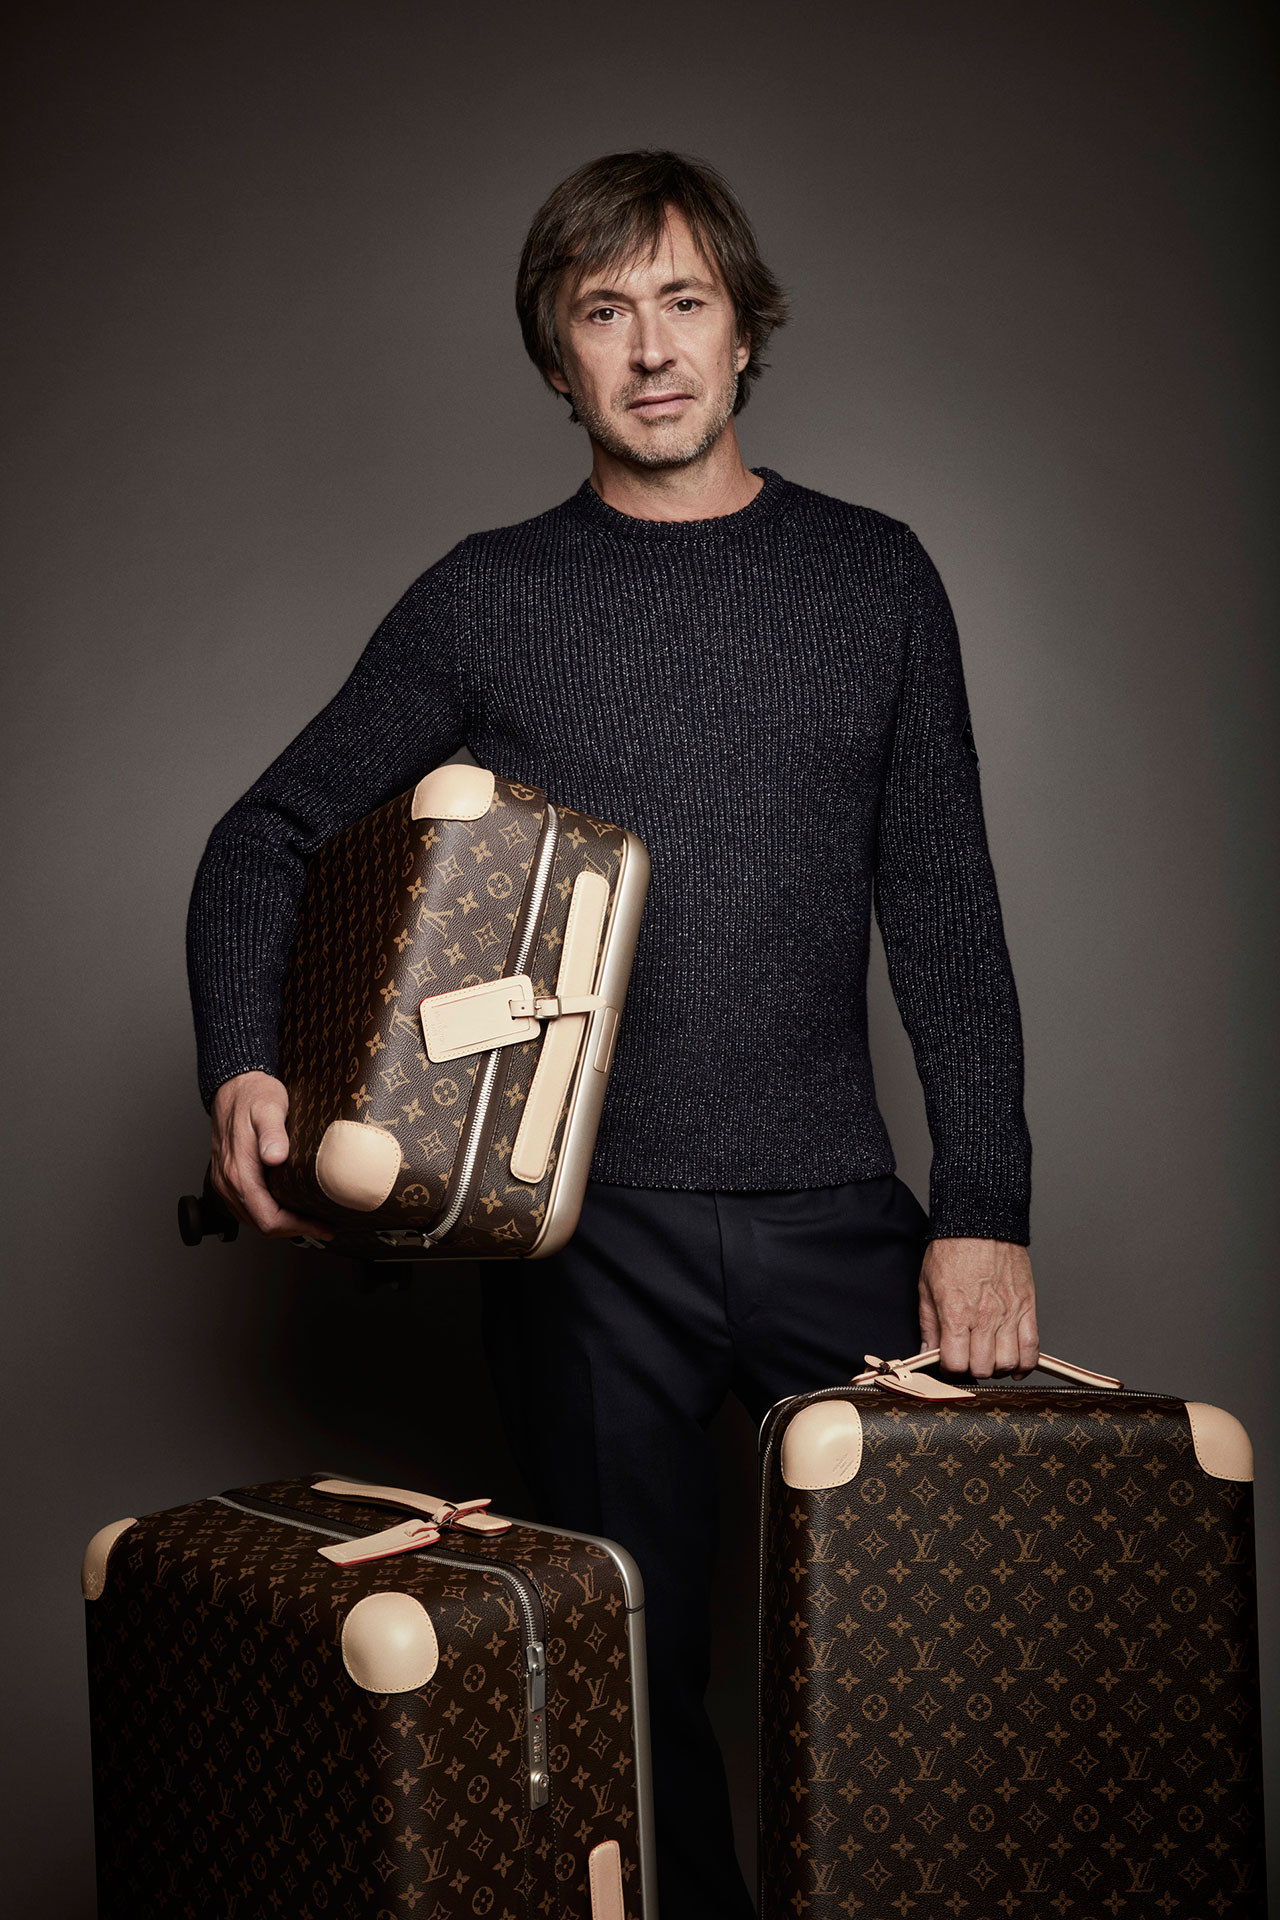 House Design Free Marc Newson Rolls Out Capsule Collection For Louis Vuitton